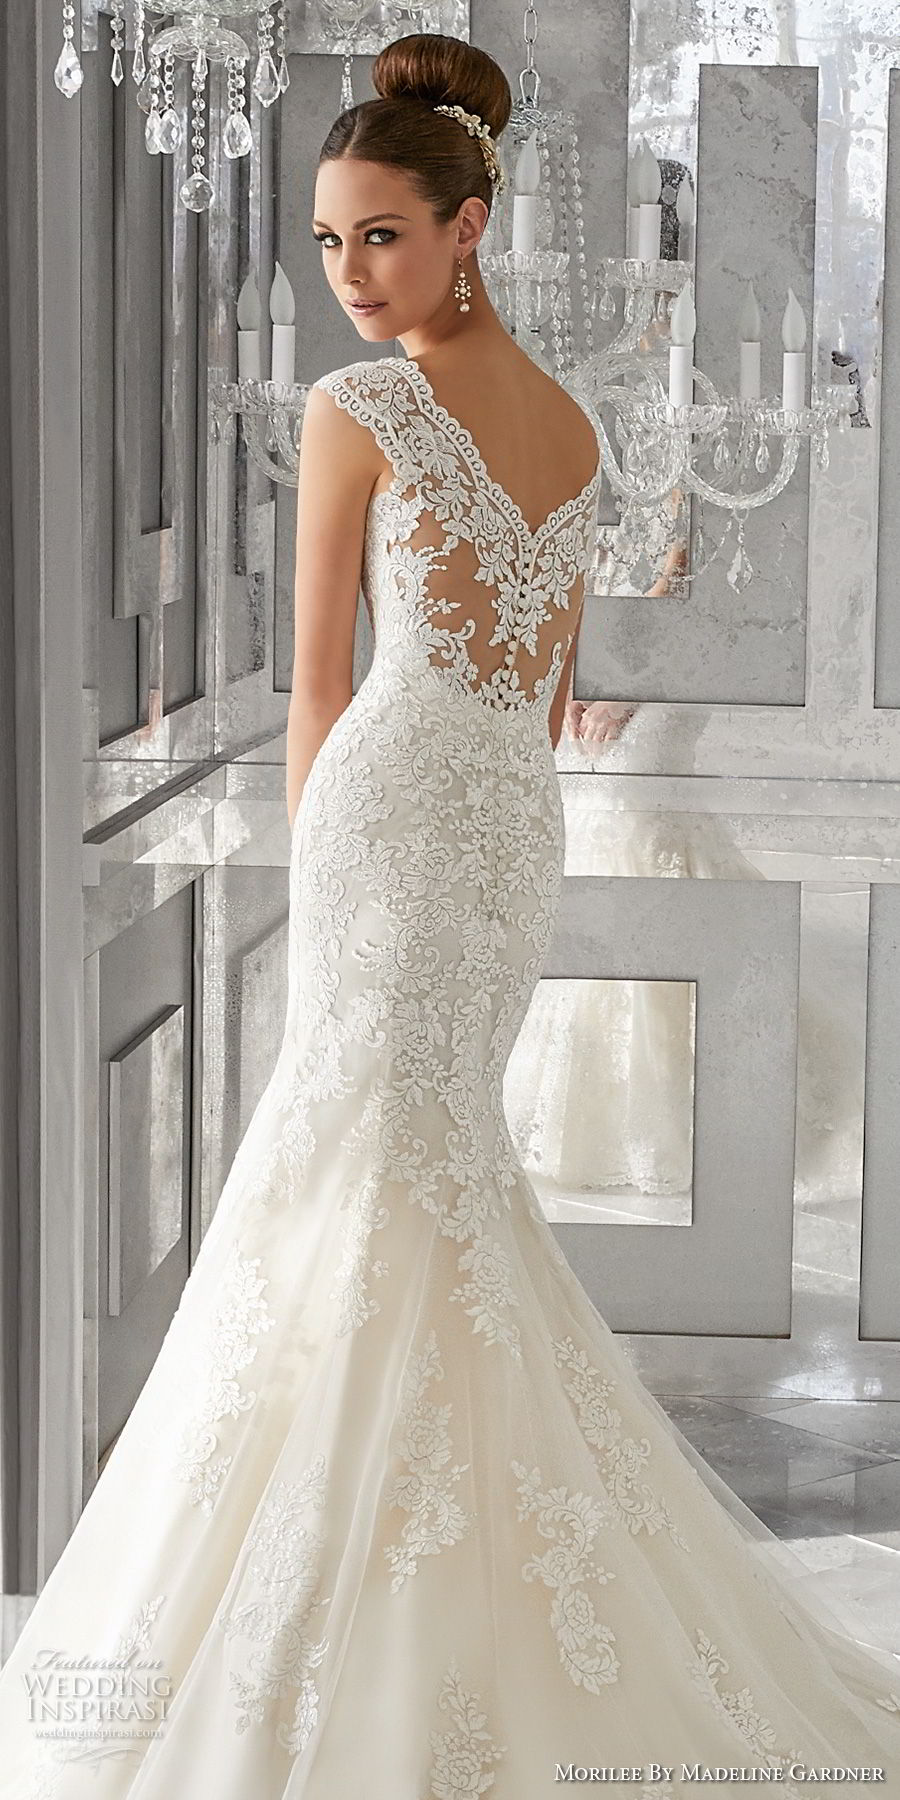 morilee fall 2017 blu bridal sleeveless thick strap v neck full embellishment elegant fit and flare wedding dress lace back royal train (62) zbv